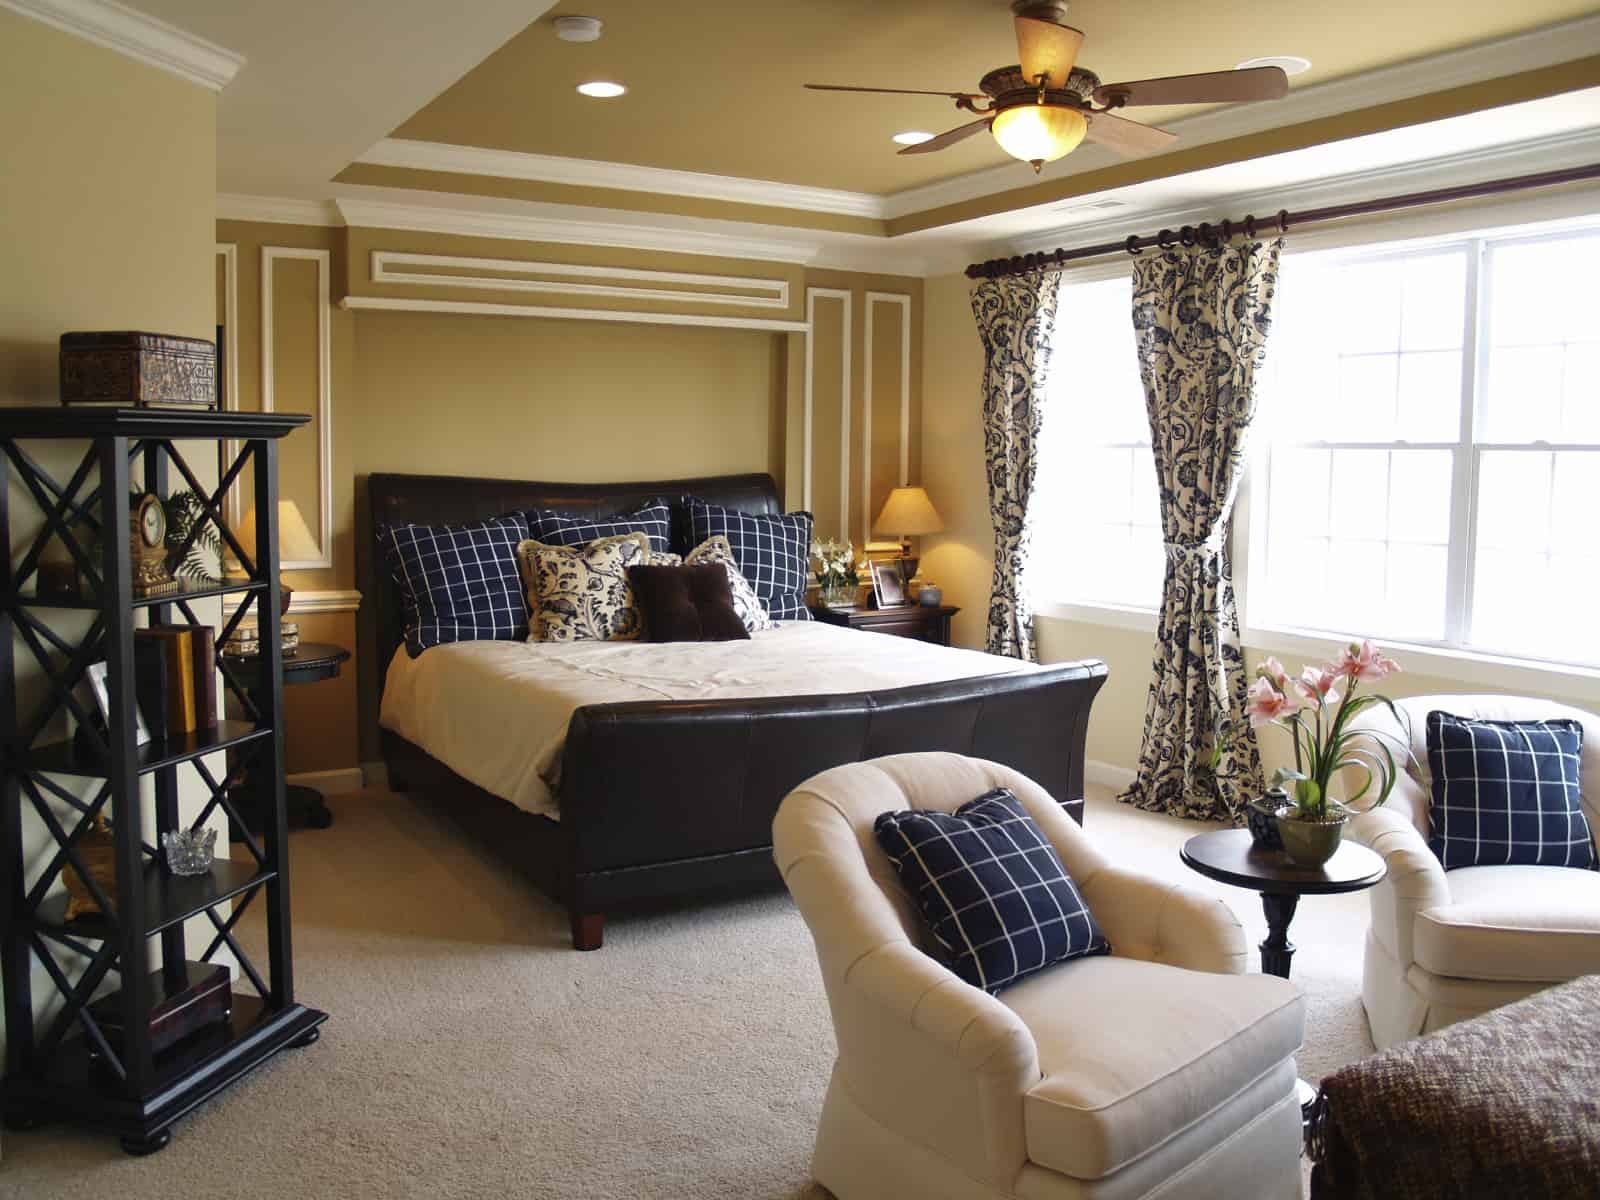 A primary bedroom featuring a cozy bed setup along with a sitting area nearby, surrounded by elegantly decorated walls and tray ceiling.